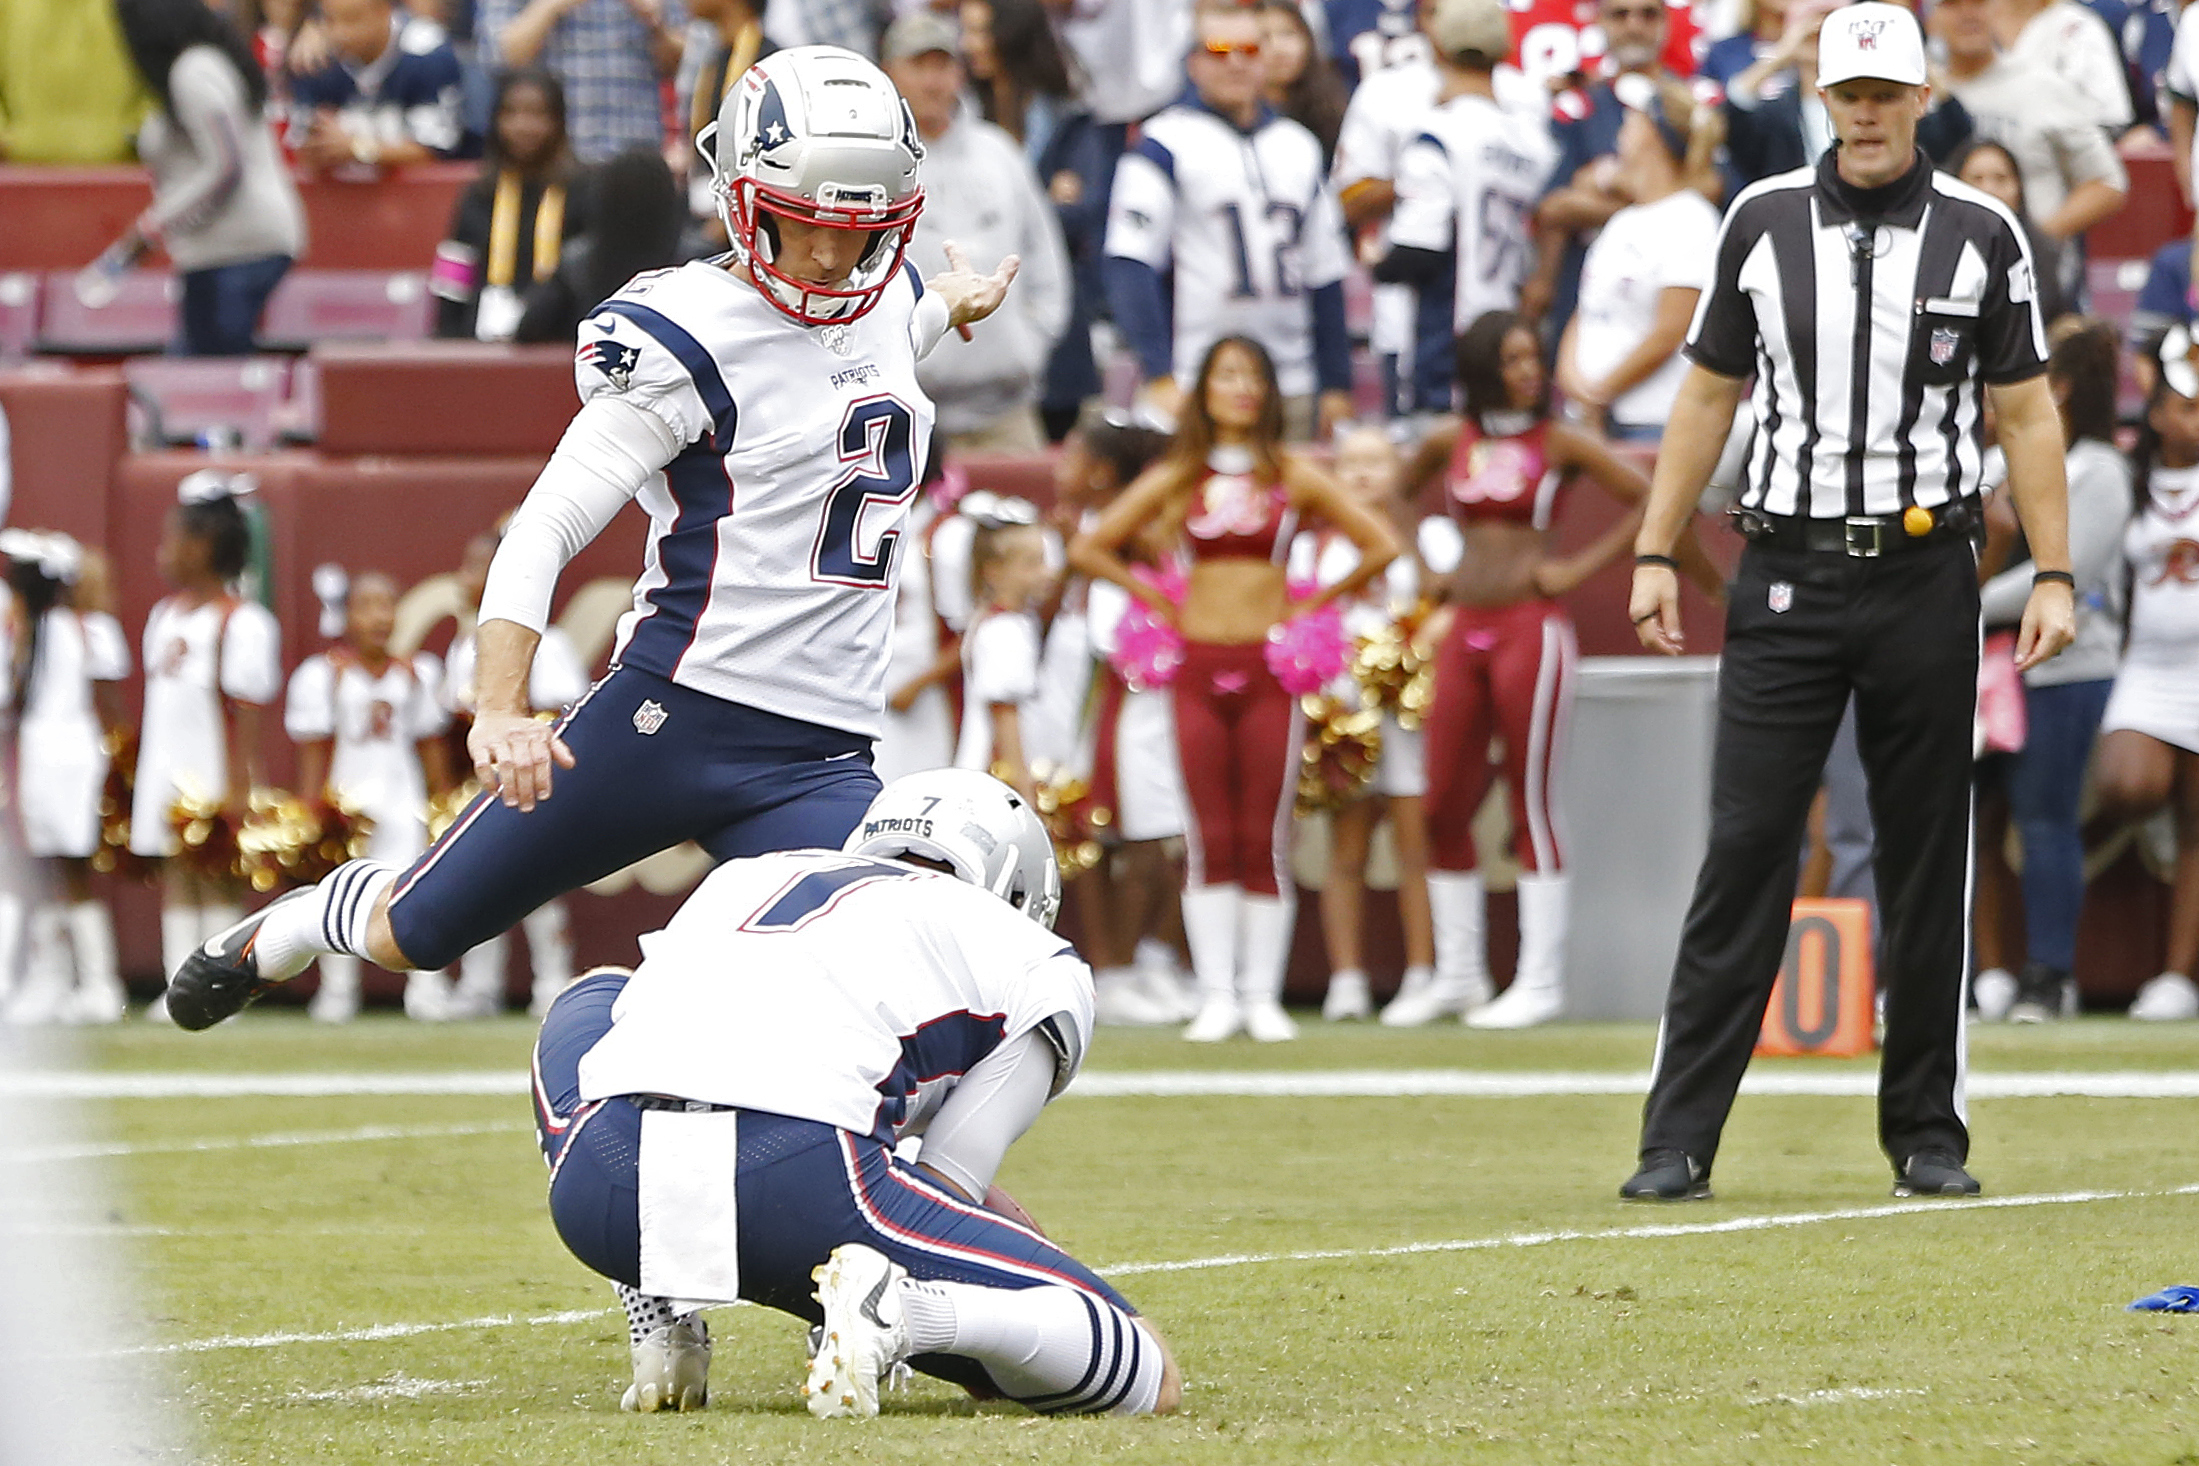 Best of NFL Week 5 on Twitter: Mike Nugent Gostkowski'd his first